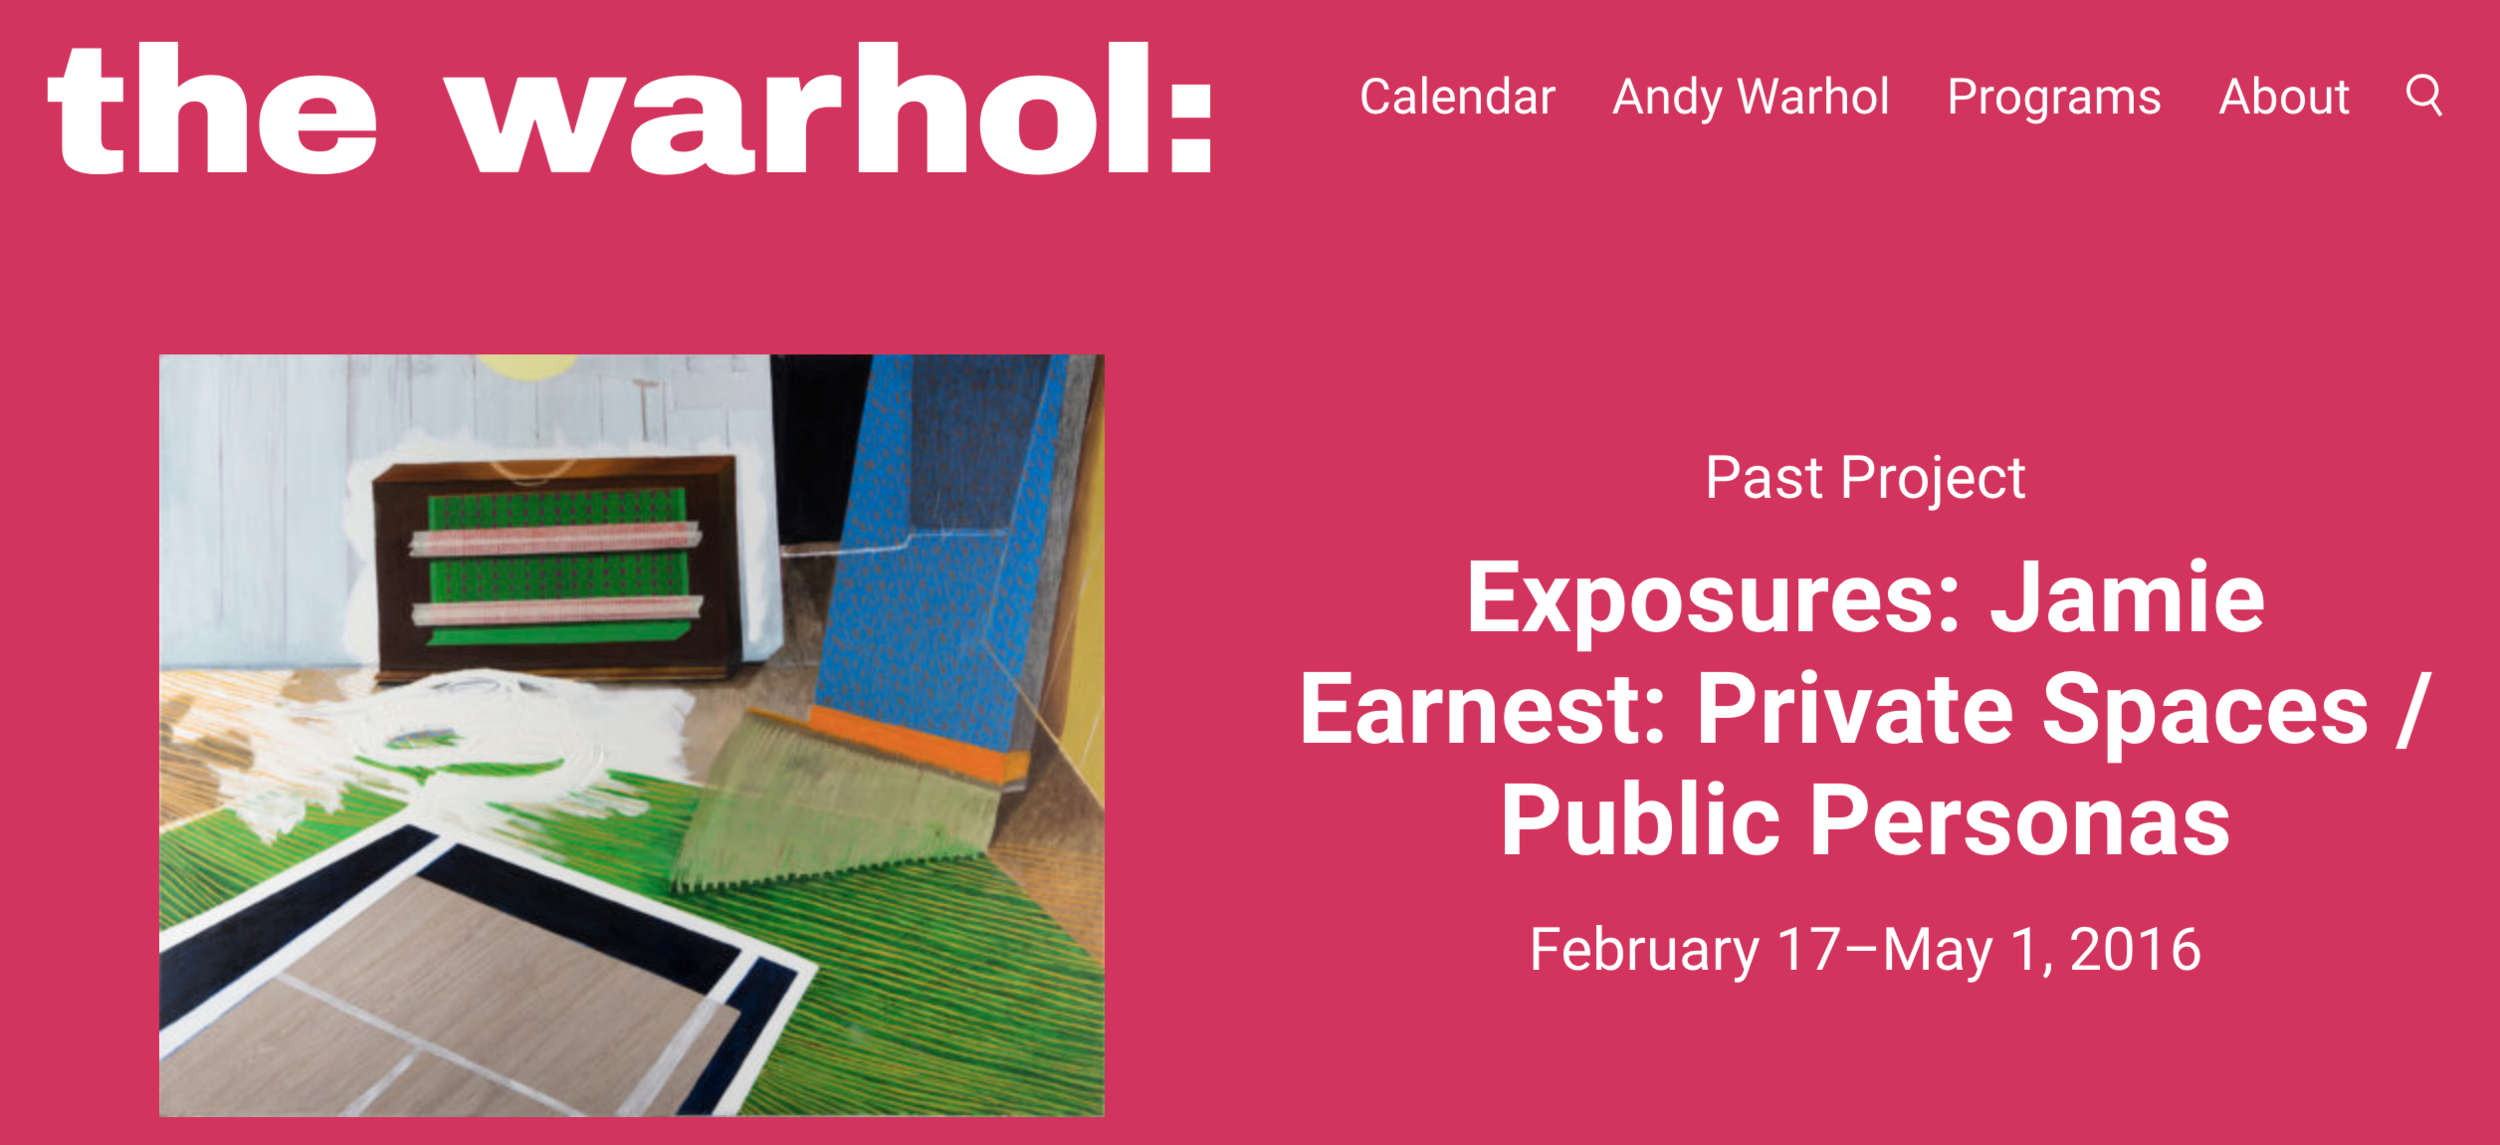 Private Spaces / Public Personas opens at The Andy Warhol Museum February 17th as part of the Exposure series - February 2016